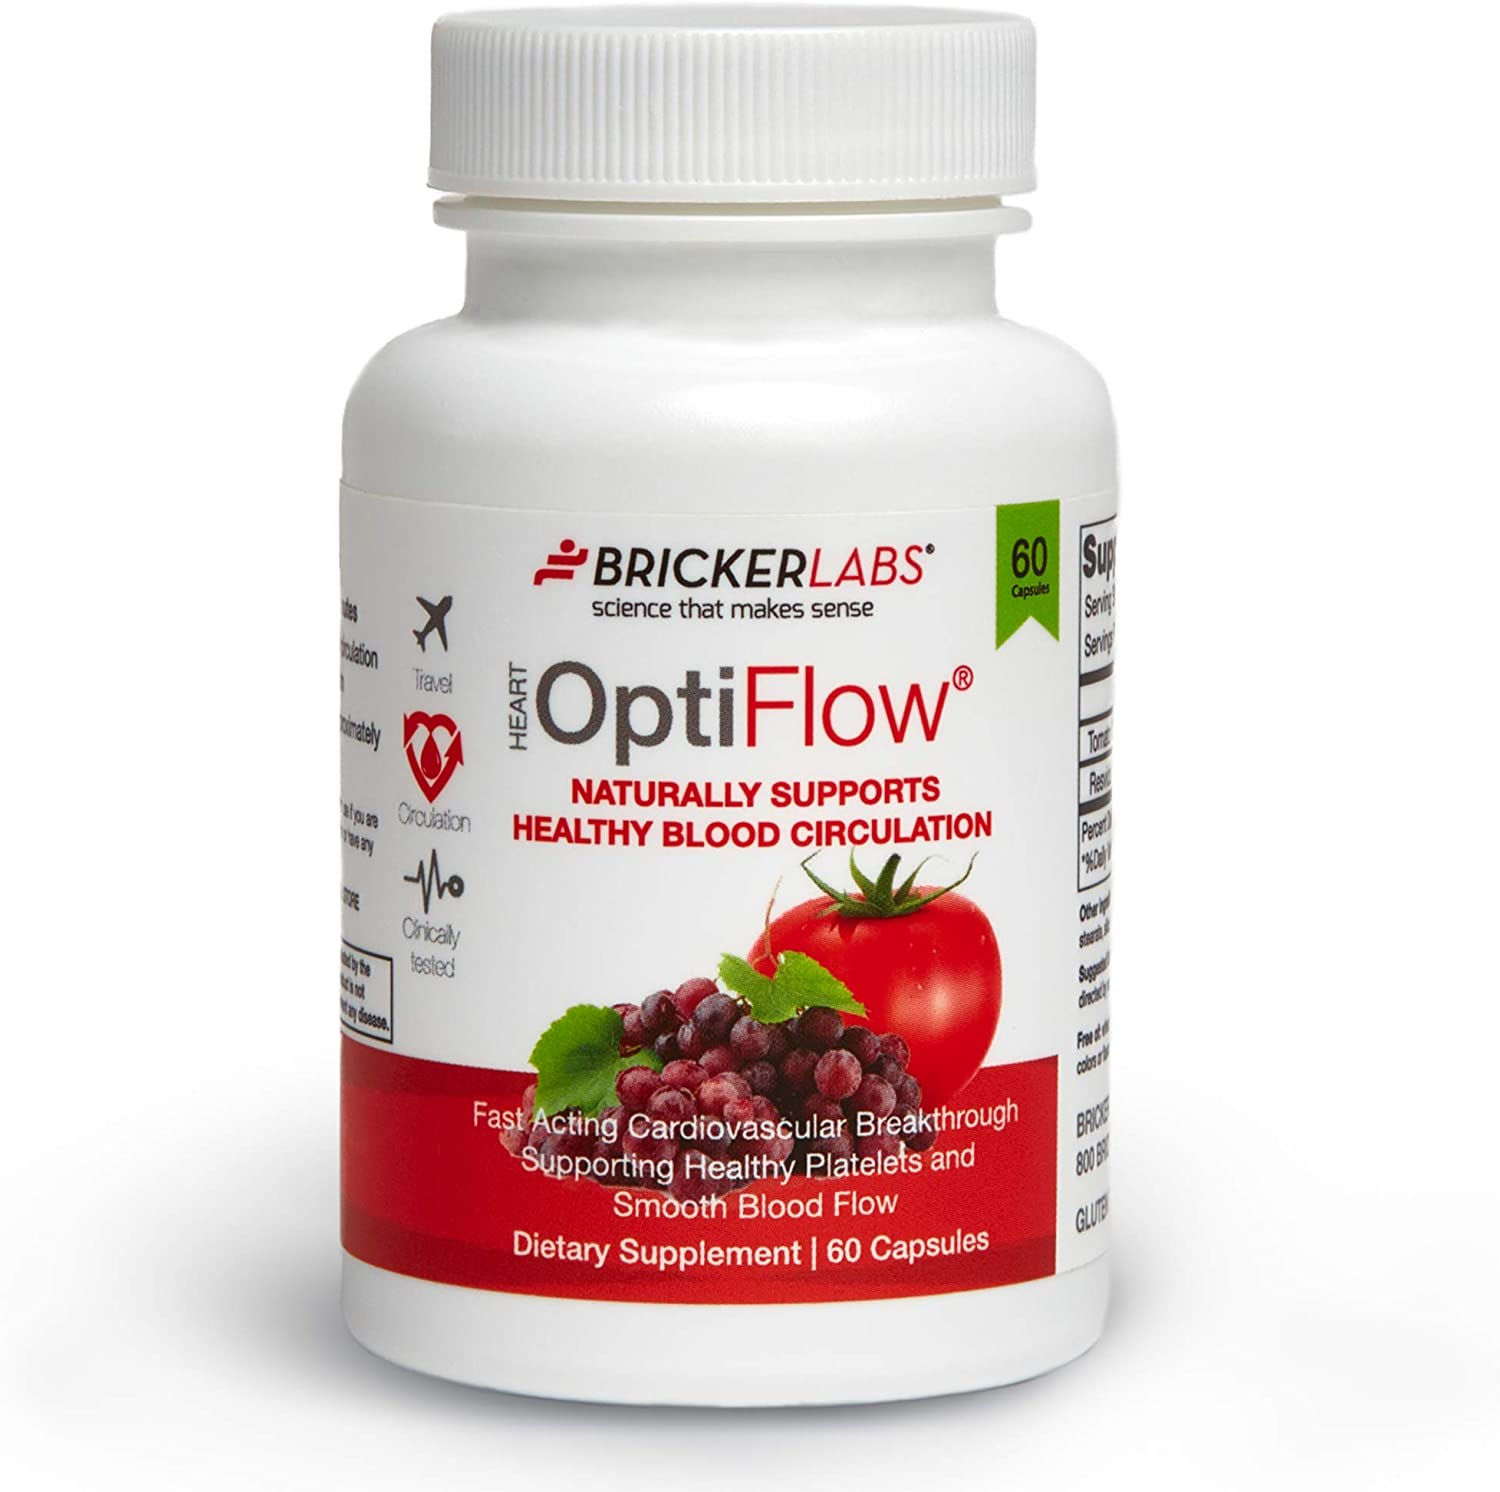 Bricker Labs OptiFlow 60ct - Naturally Supports Healthy Blood Circulation and Healthy Heart │ Works Within 90 Minutes │Gluten Free, Non- GMO, Vegan , Vegetarian │ with FruitFlow & Resvida